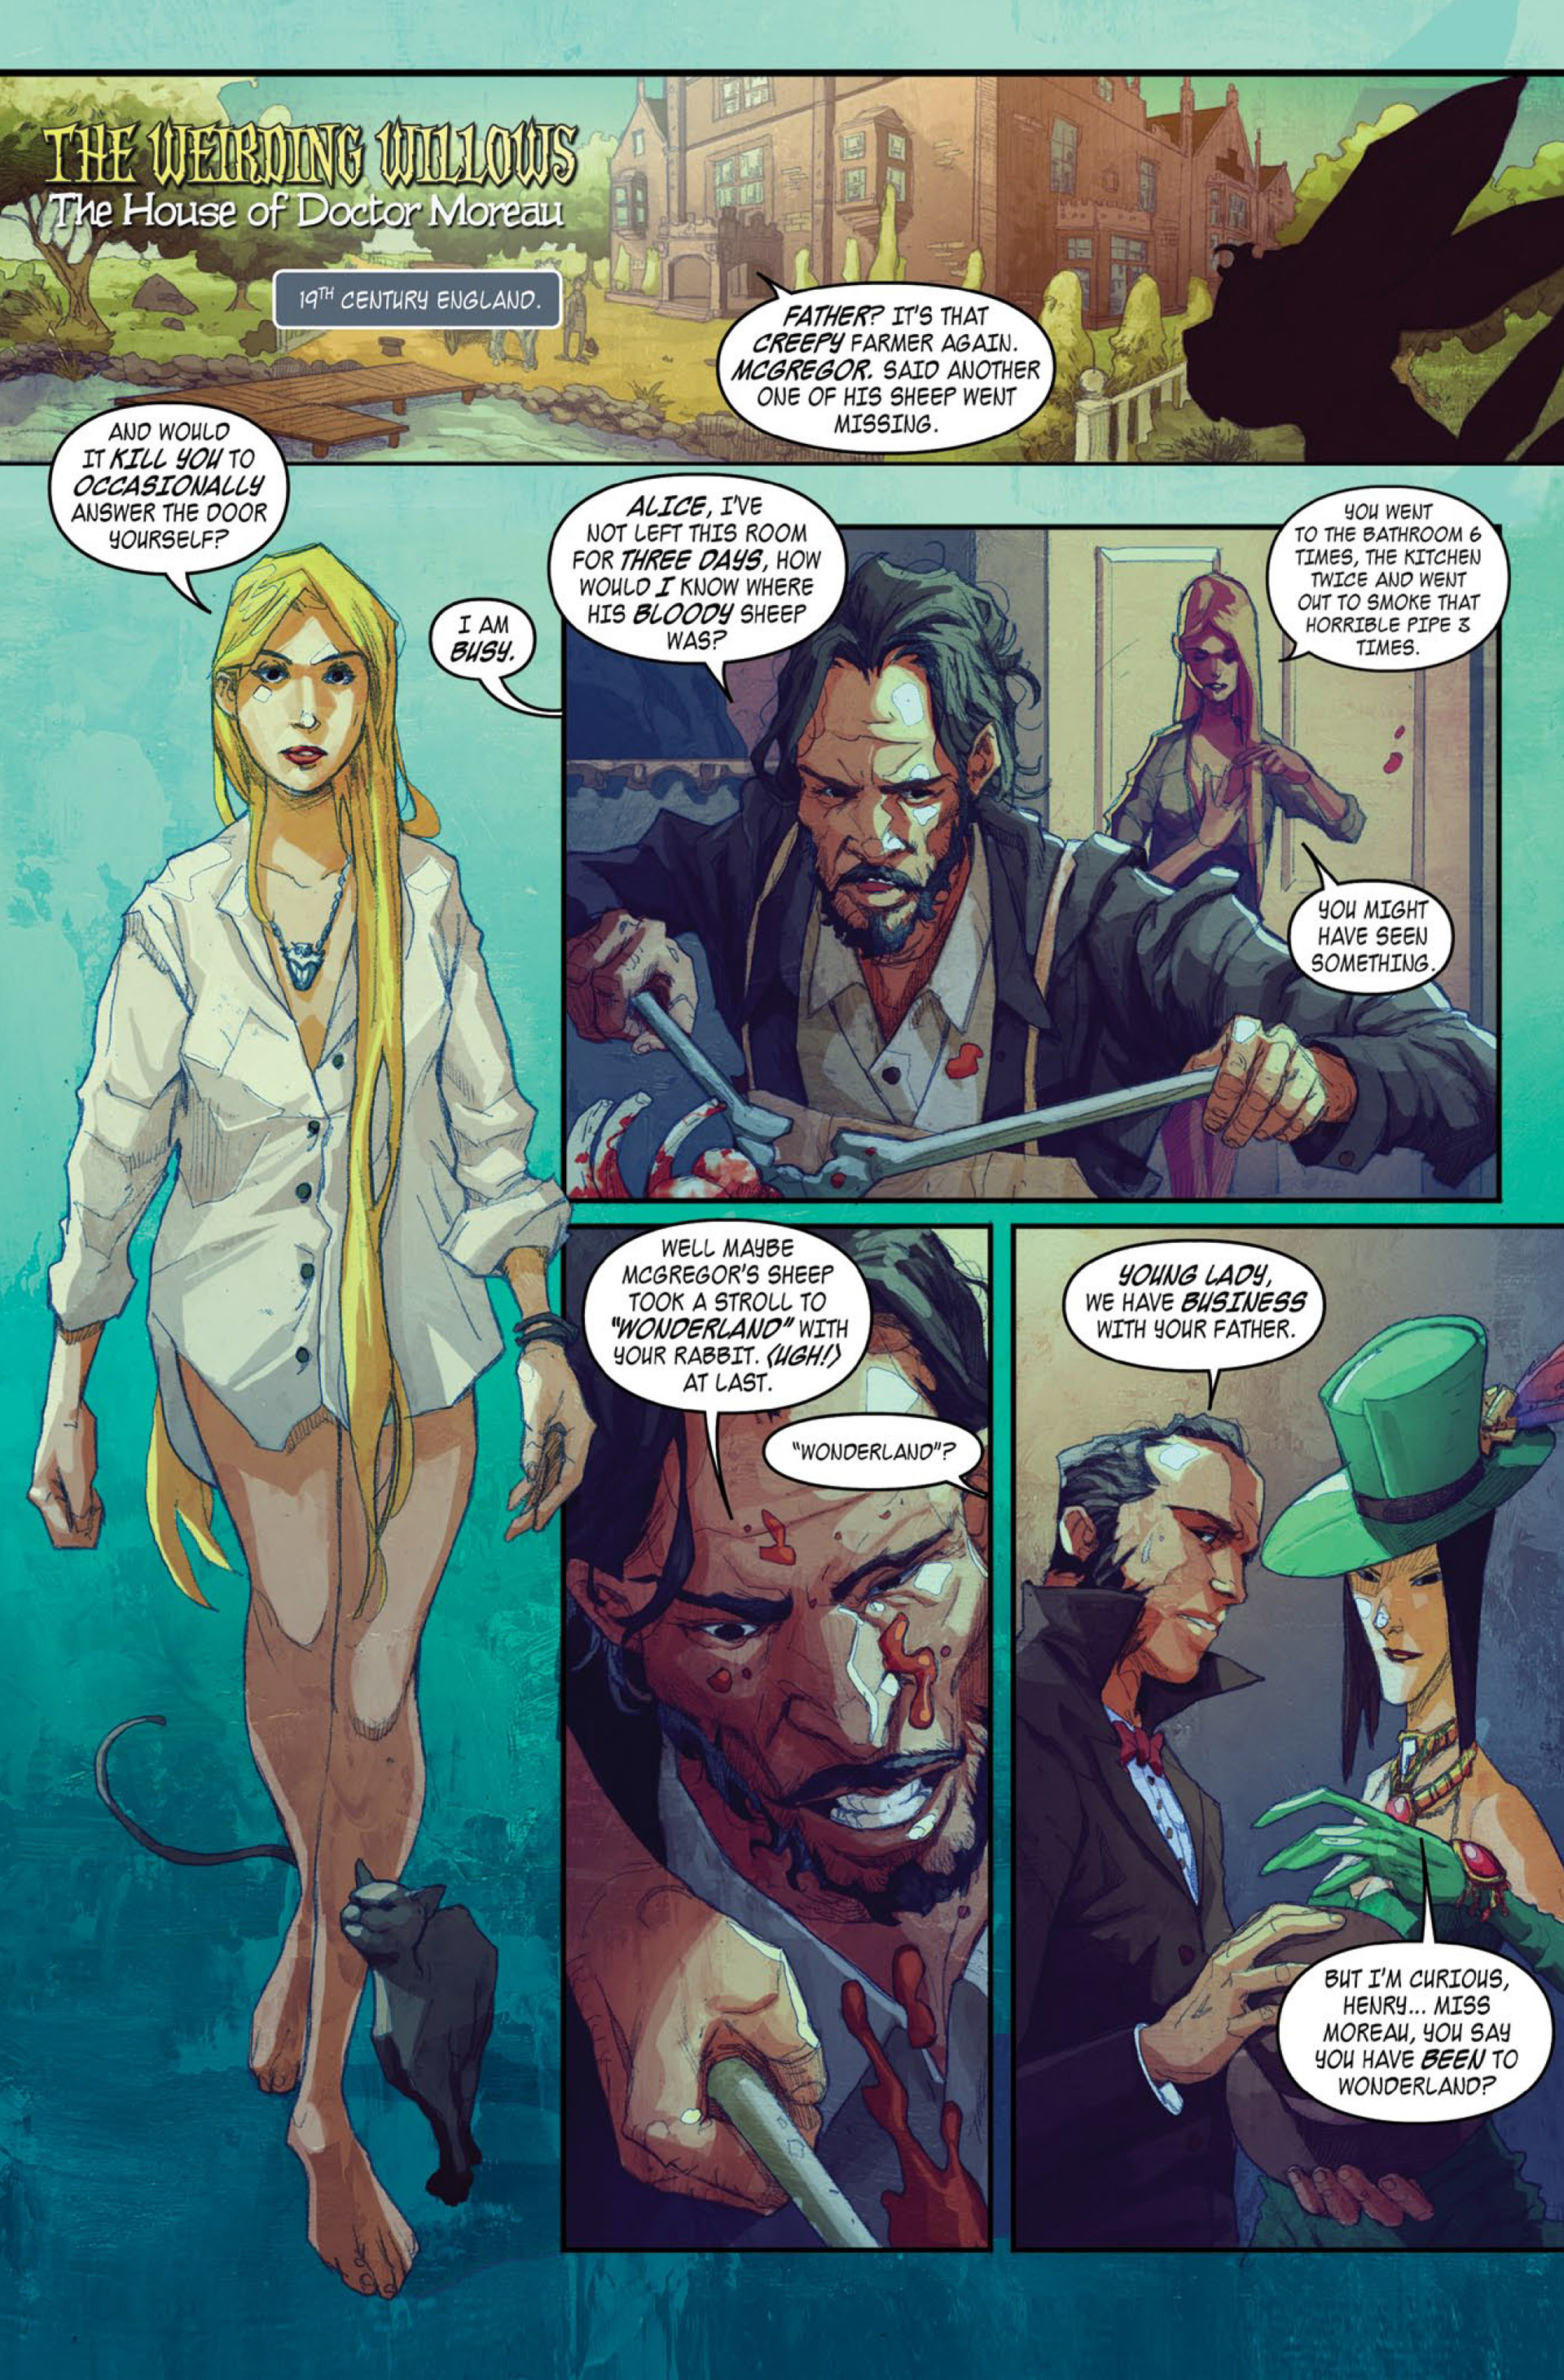 Read online A1 Presents The Weirding Willows comic -  Issue #A1 Presents The Weirding Willows Full - 3